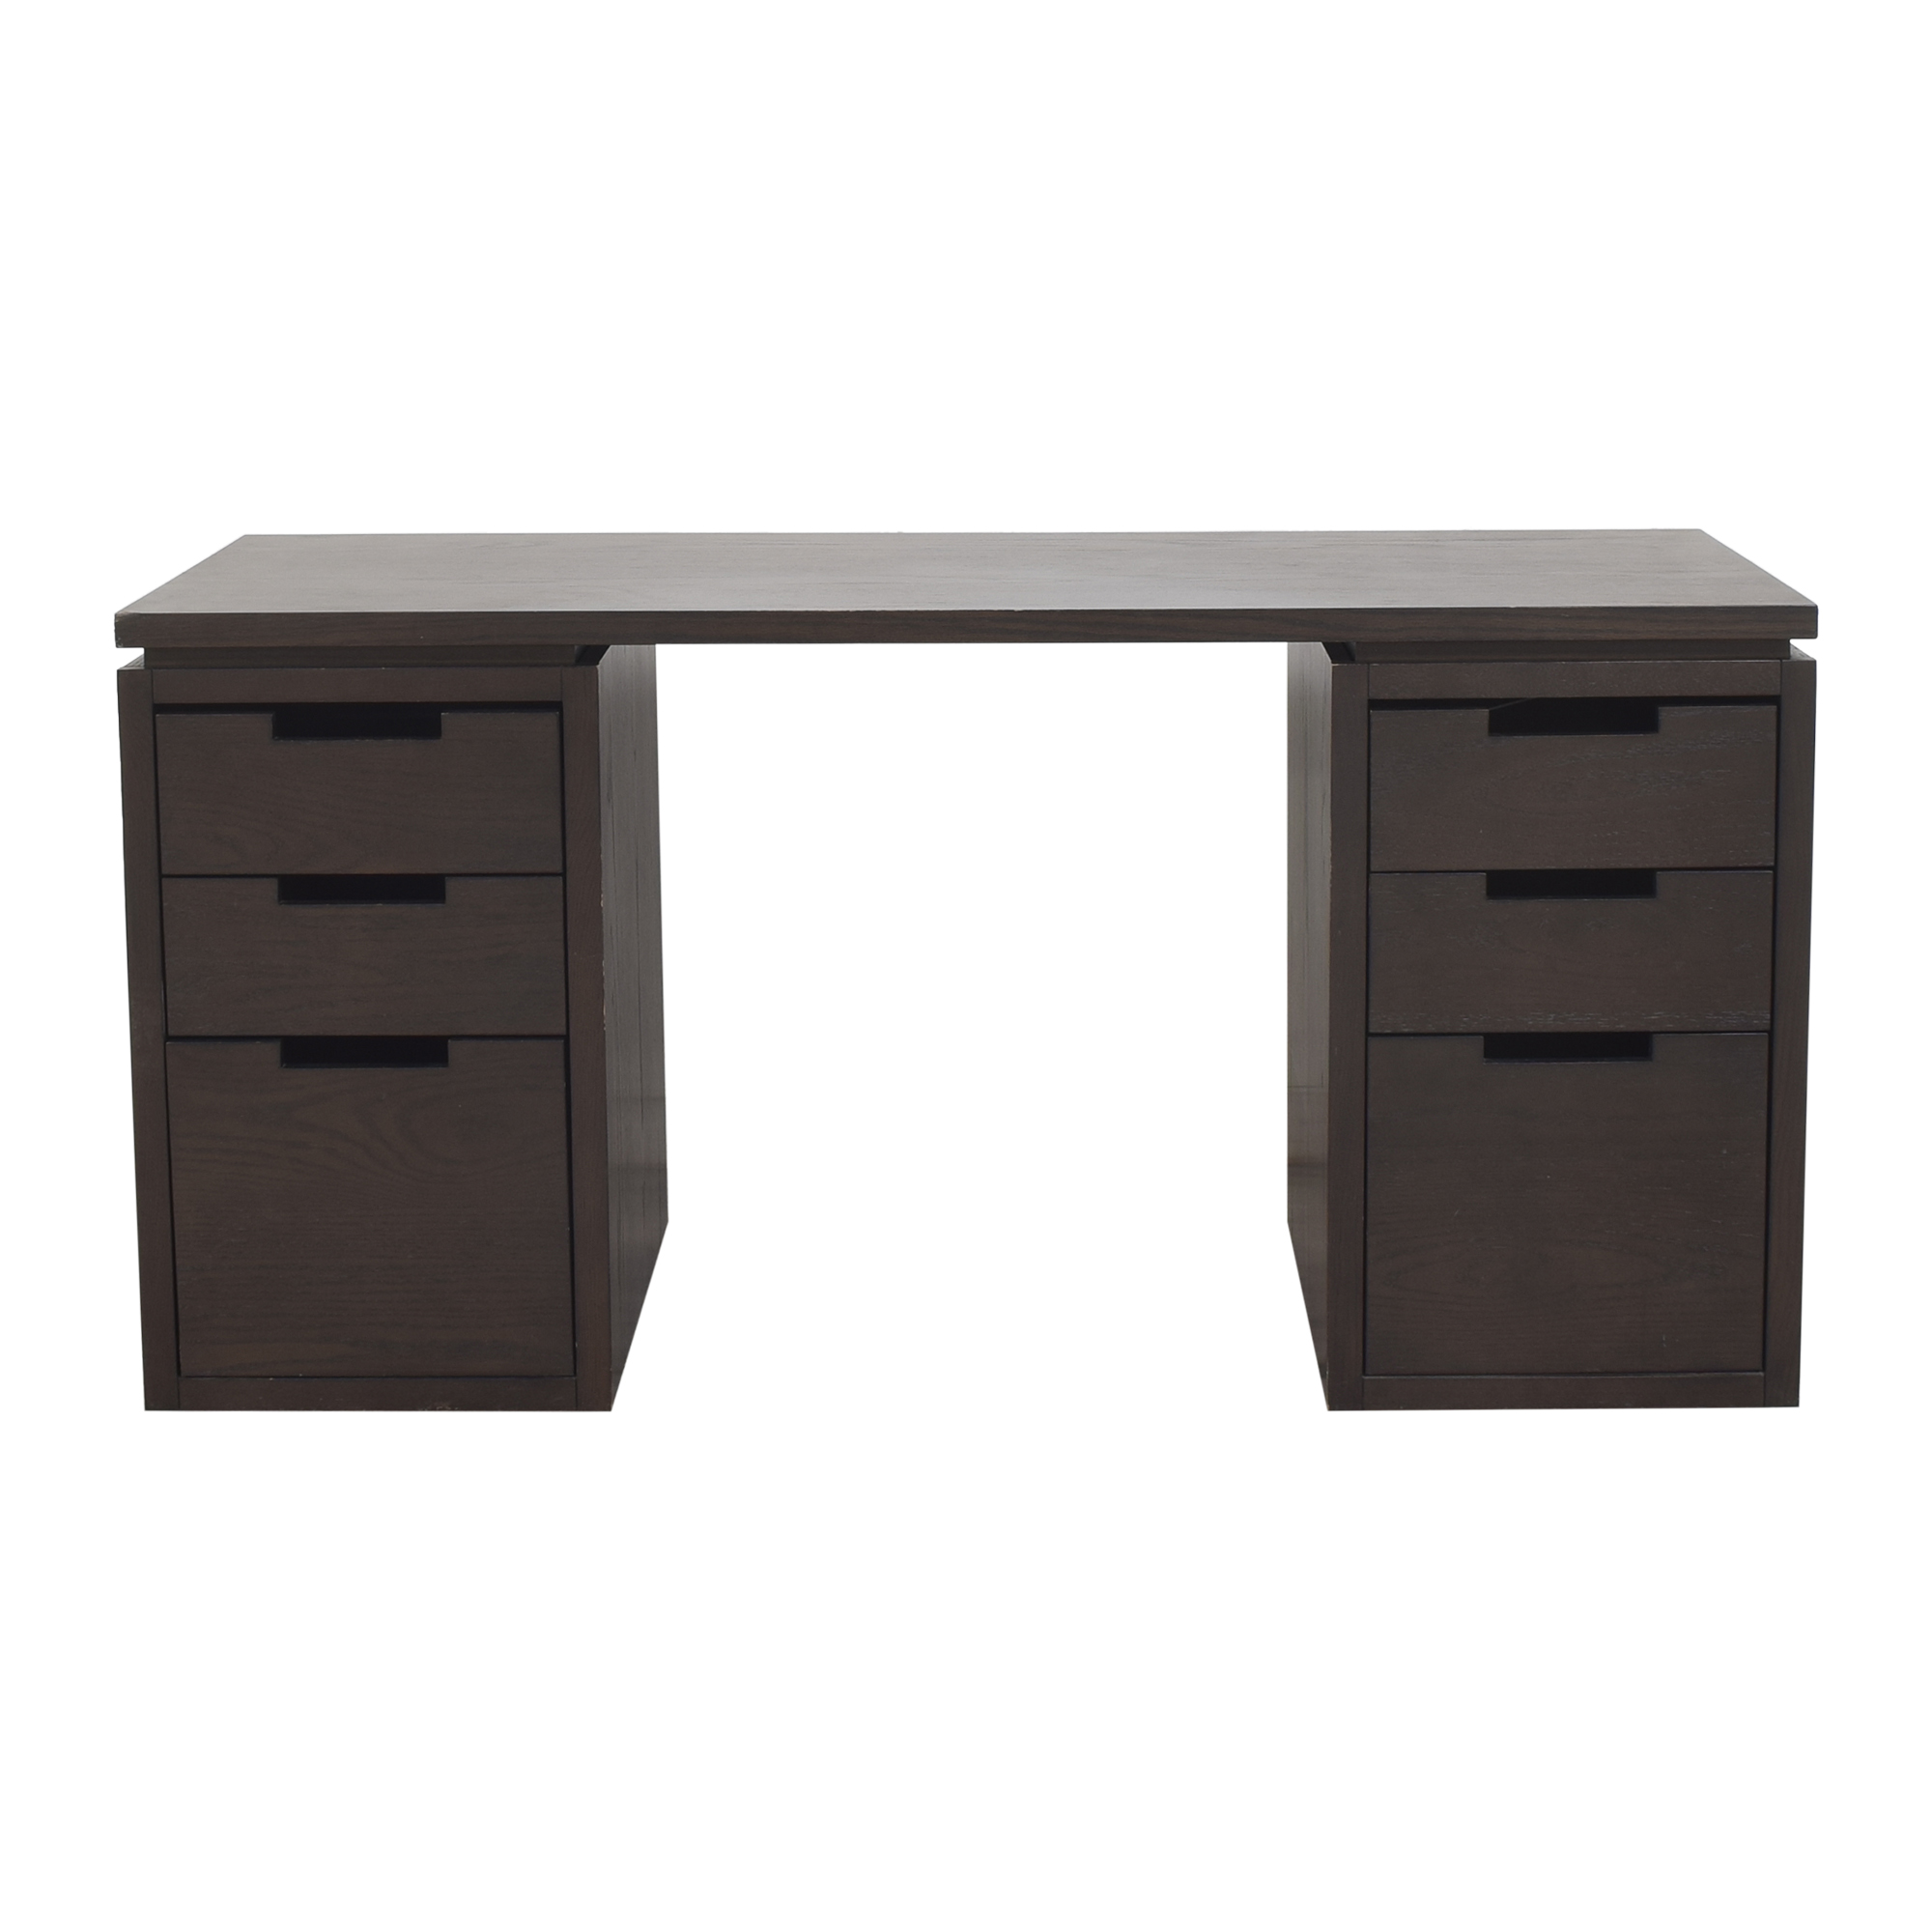 West Elm West Elm Modular Office Basic Desk nj